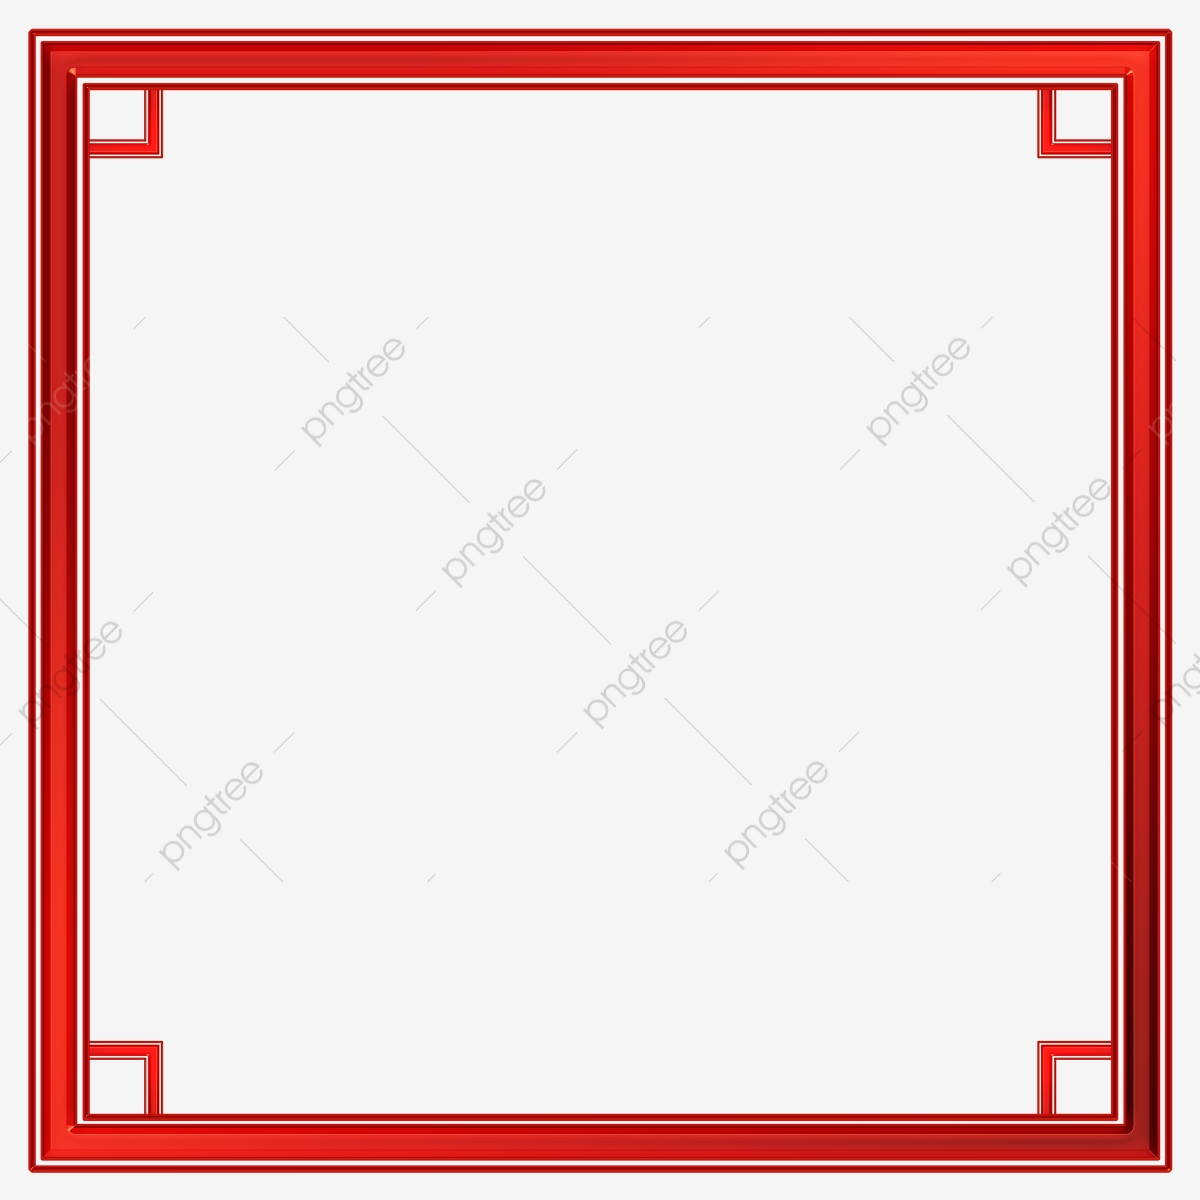 Dark Red Solid Square Frame Border Png Psd, Dark Red Frame.